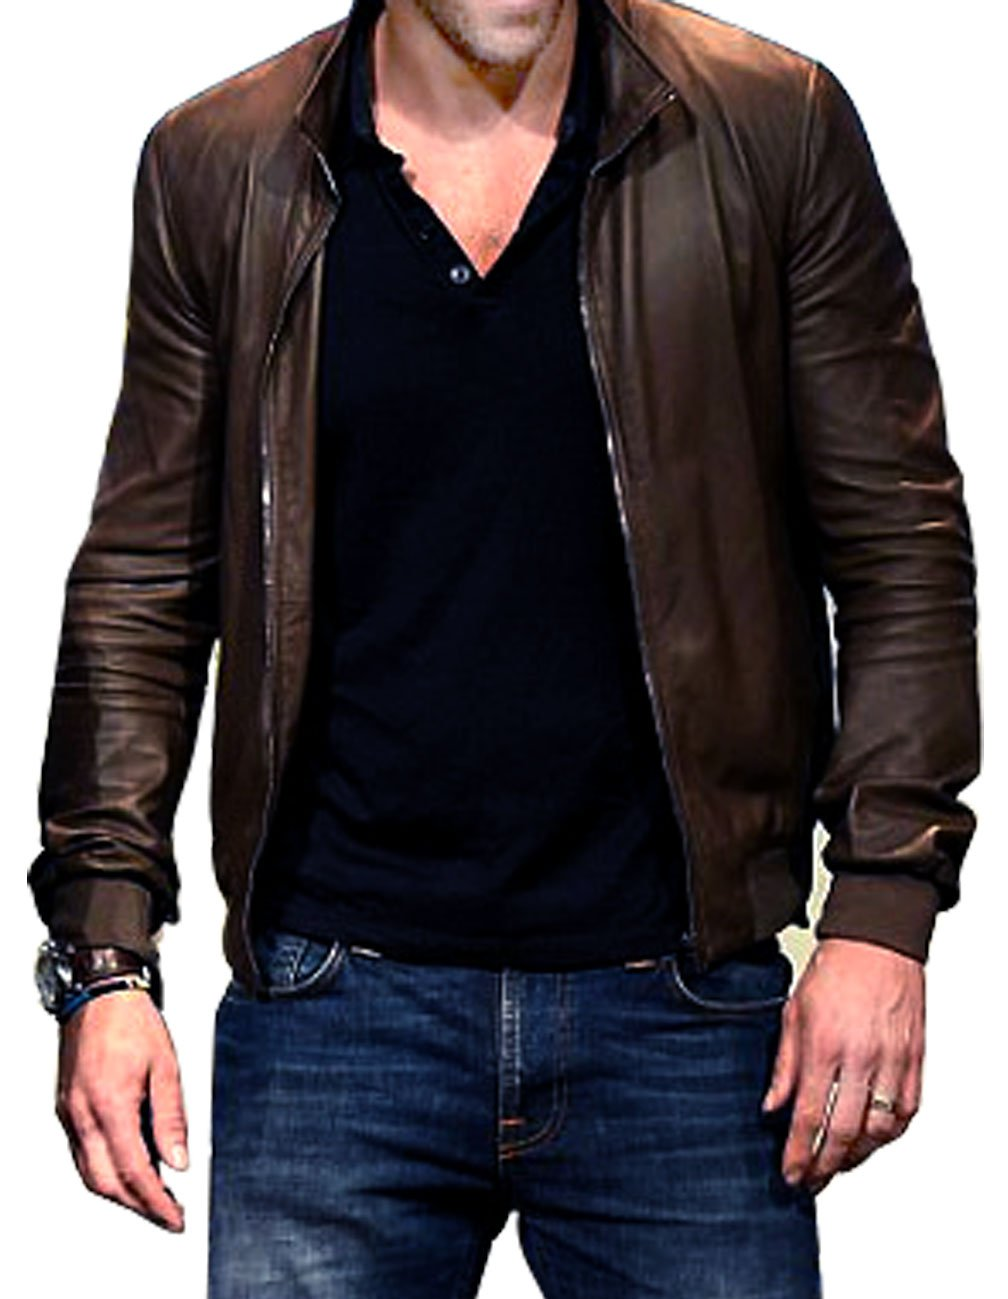 88d5b3e35c04 Ryan Reynolds Leather Jacket · Ryan Reynolds brown leather jacket